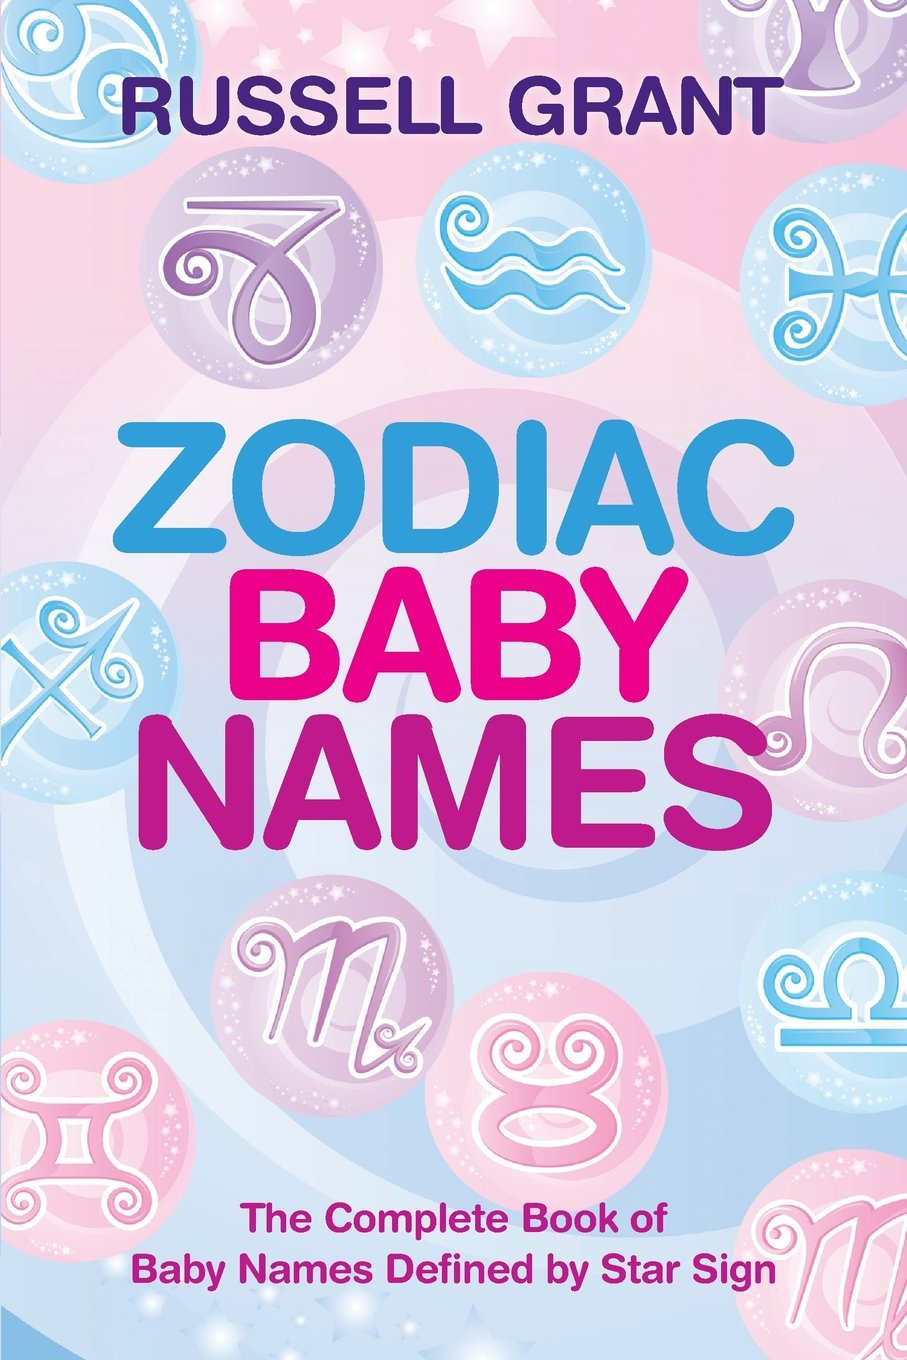 Zodiac Baby Names: The Complete Book of Baby Names Defined